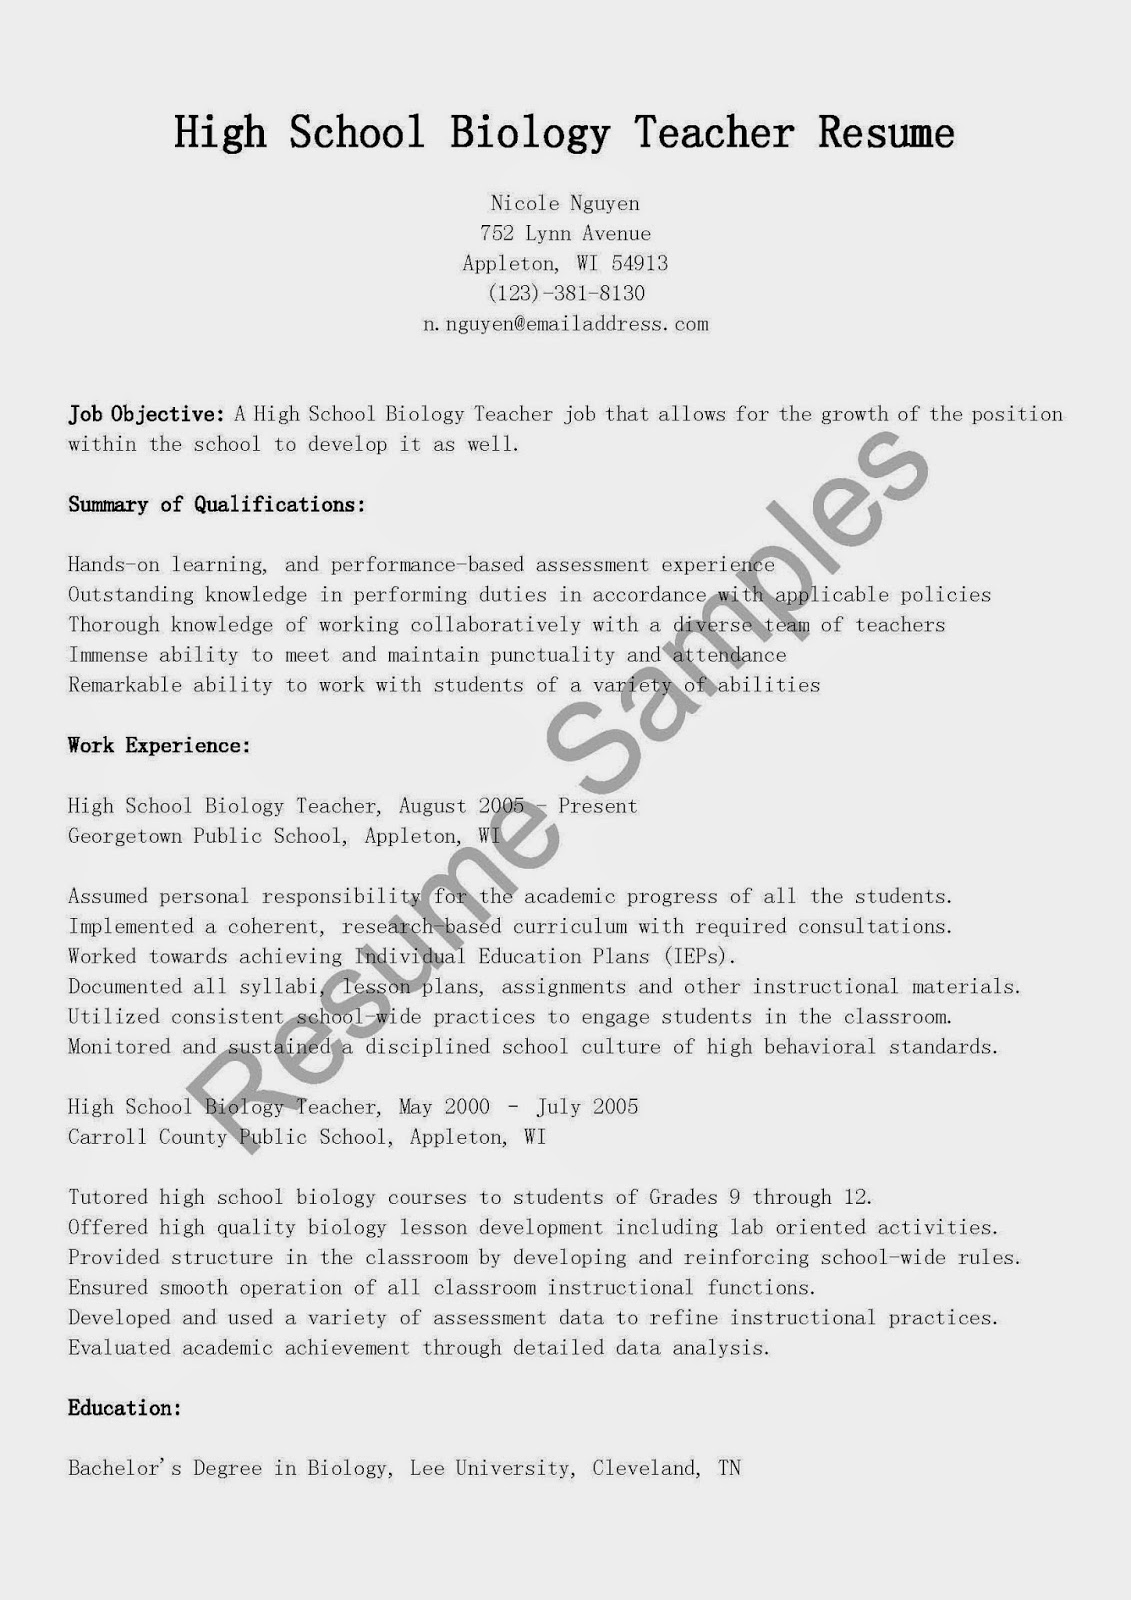 sample wildlife biologist resume top biotechnology resume teacher resume samples visualcv resume samples database example of - Sample Wildlife Biologist Resume